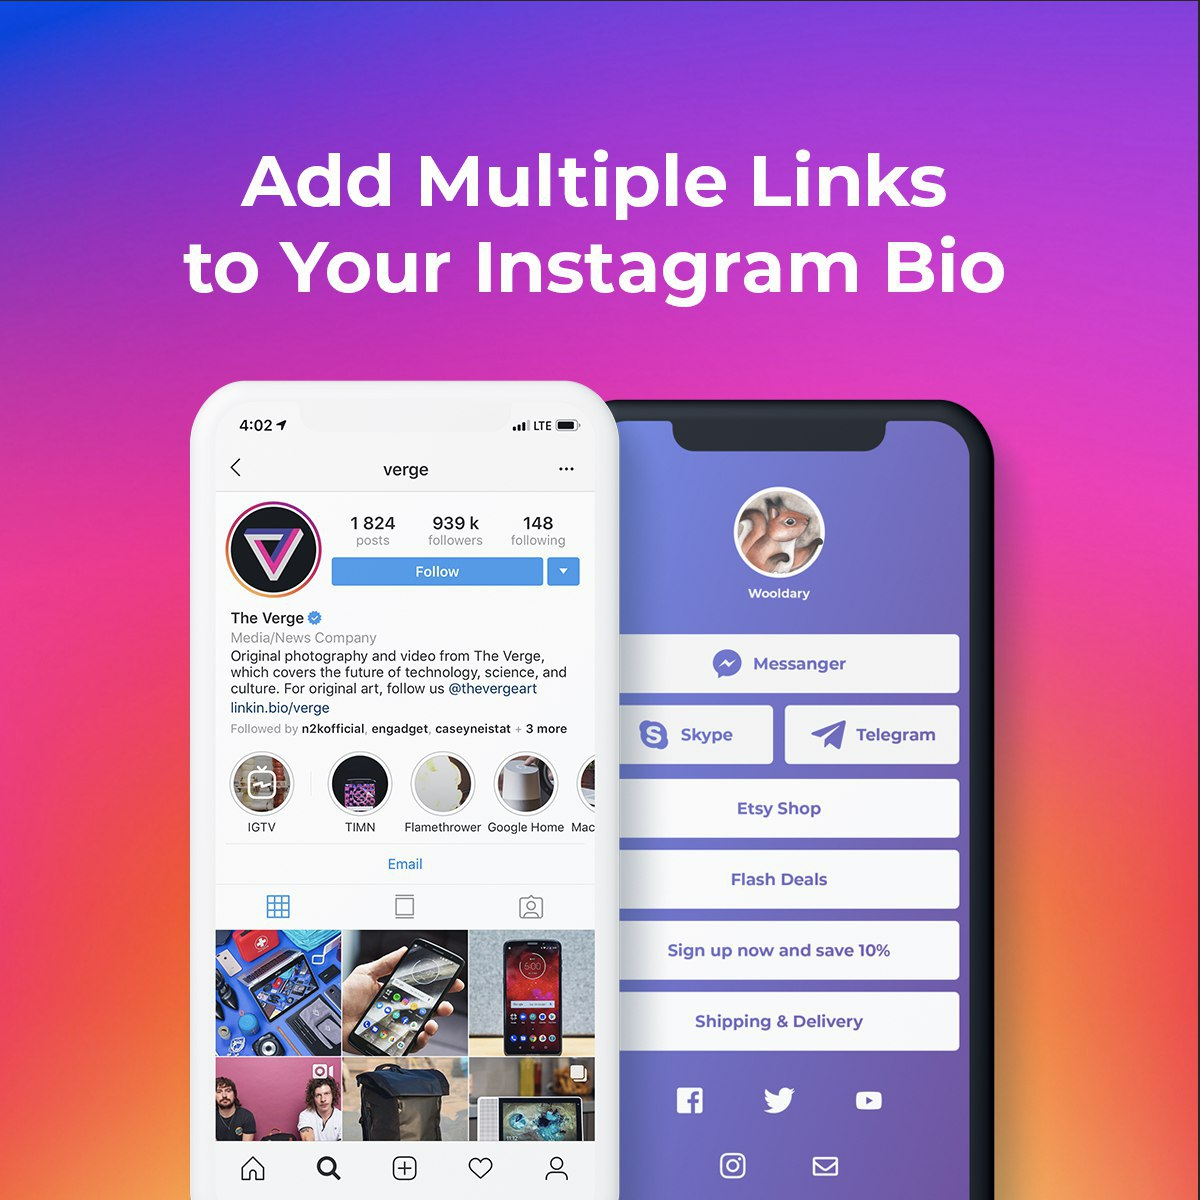 Supercharge Your Instagram Bio Link!